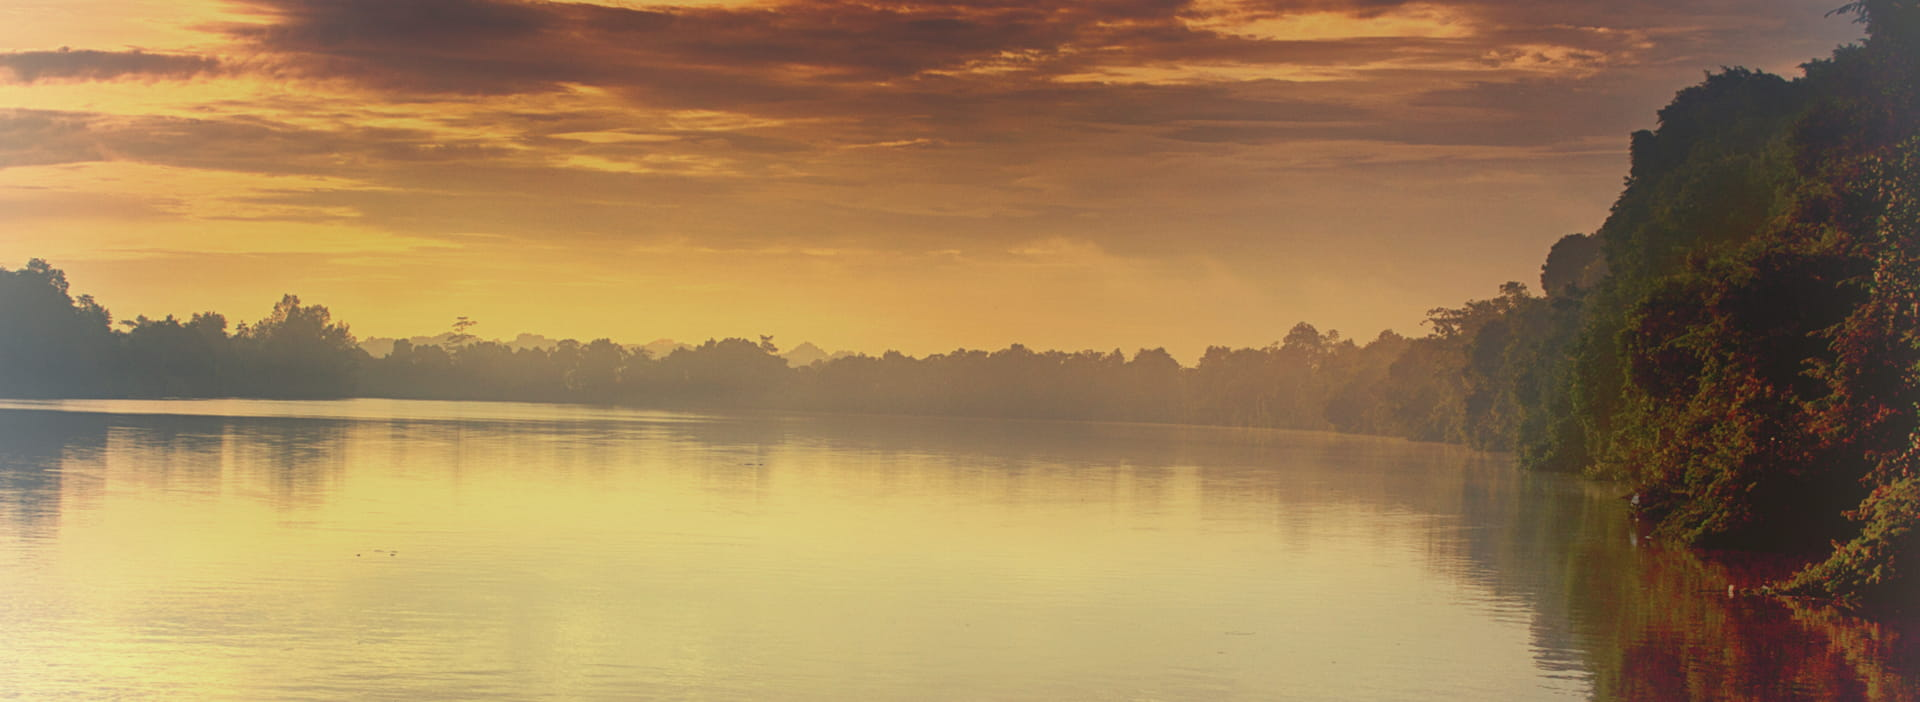 A hazy lake at sunrise with an amber overcast.